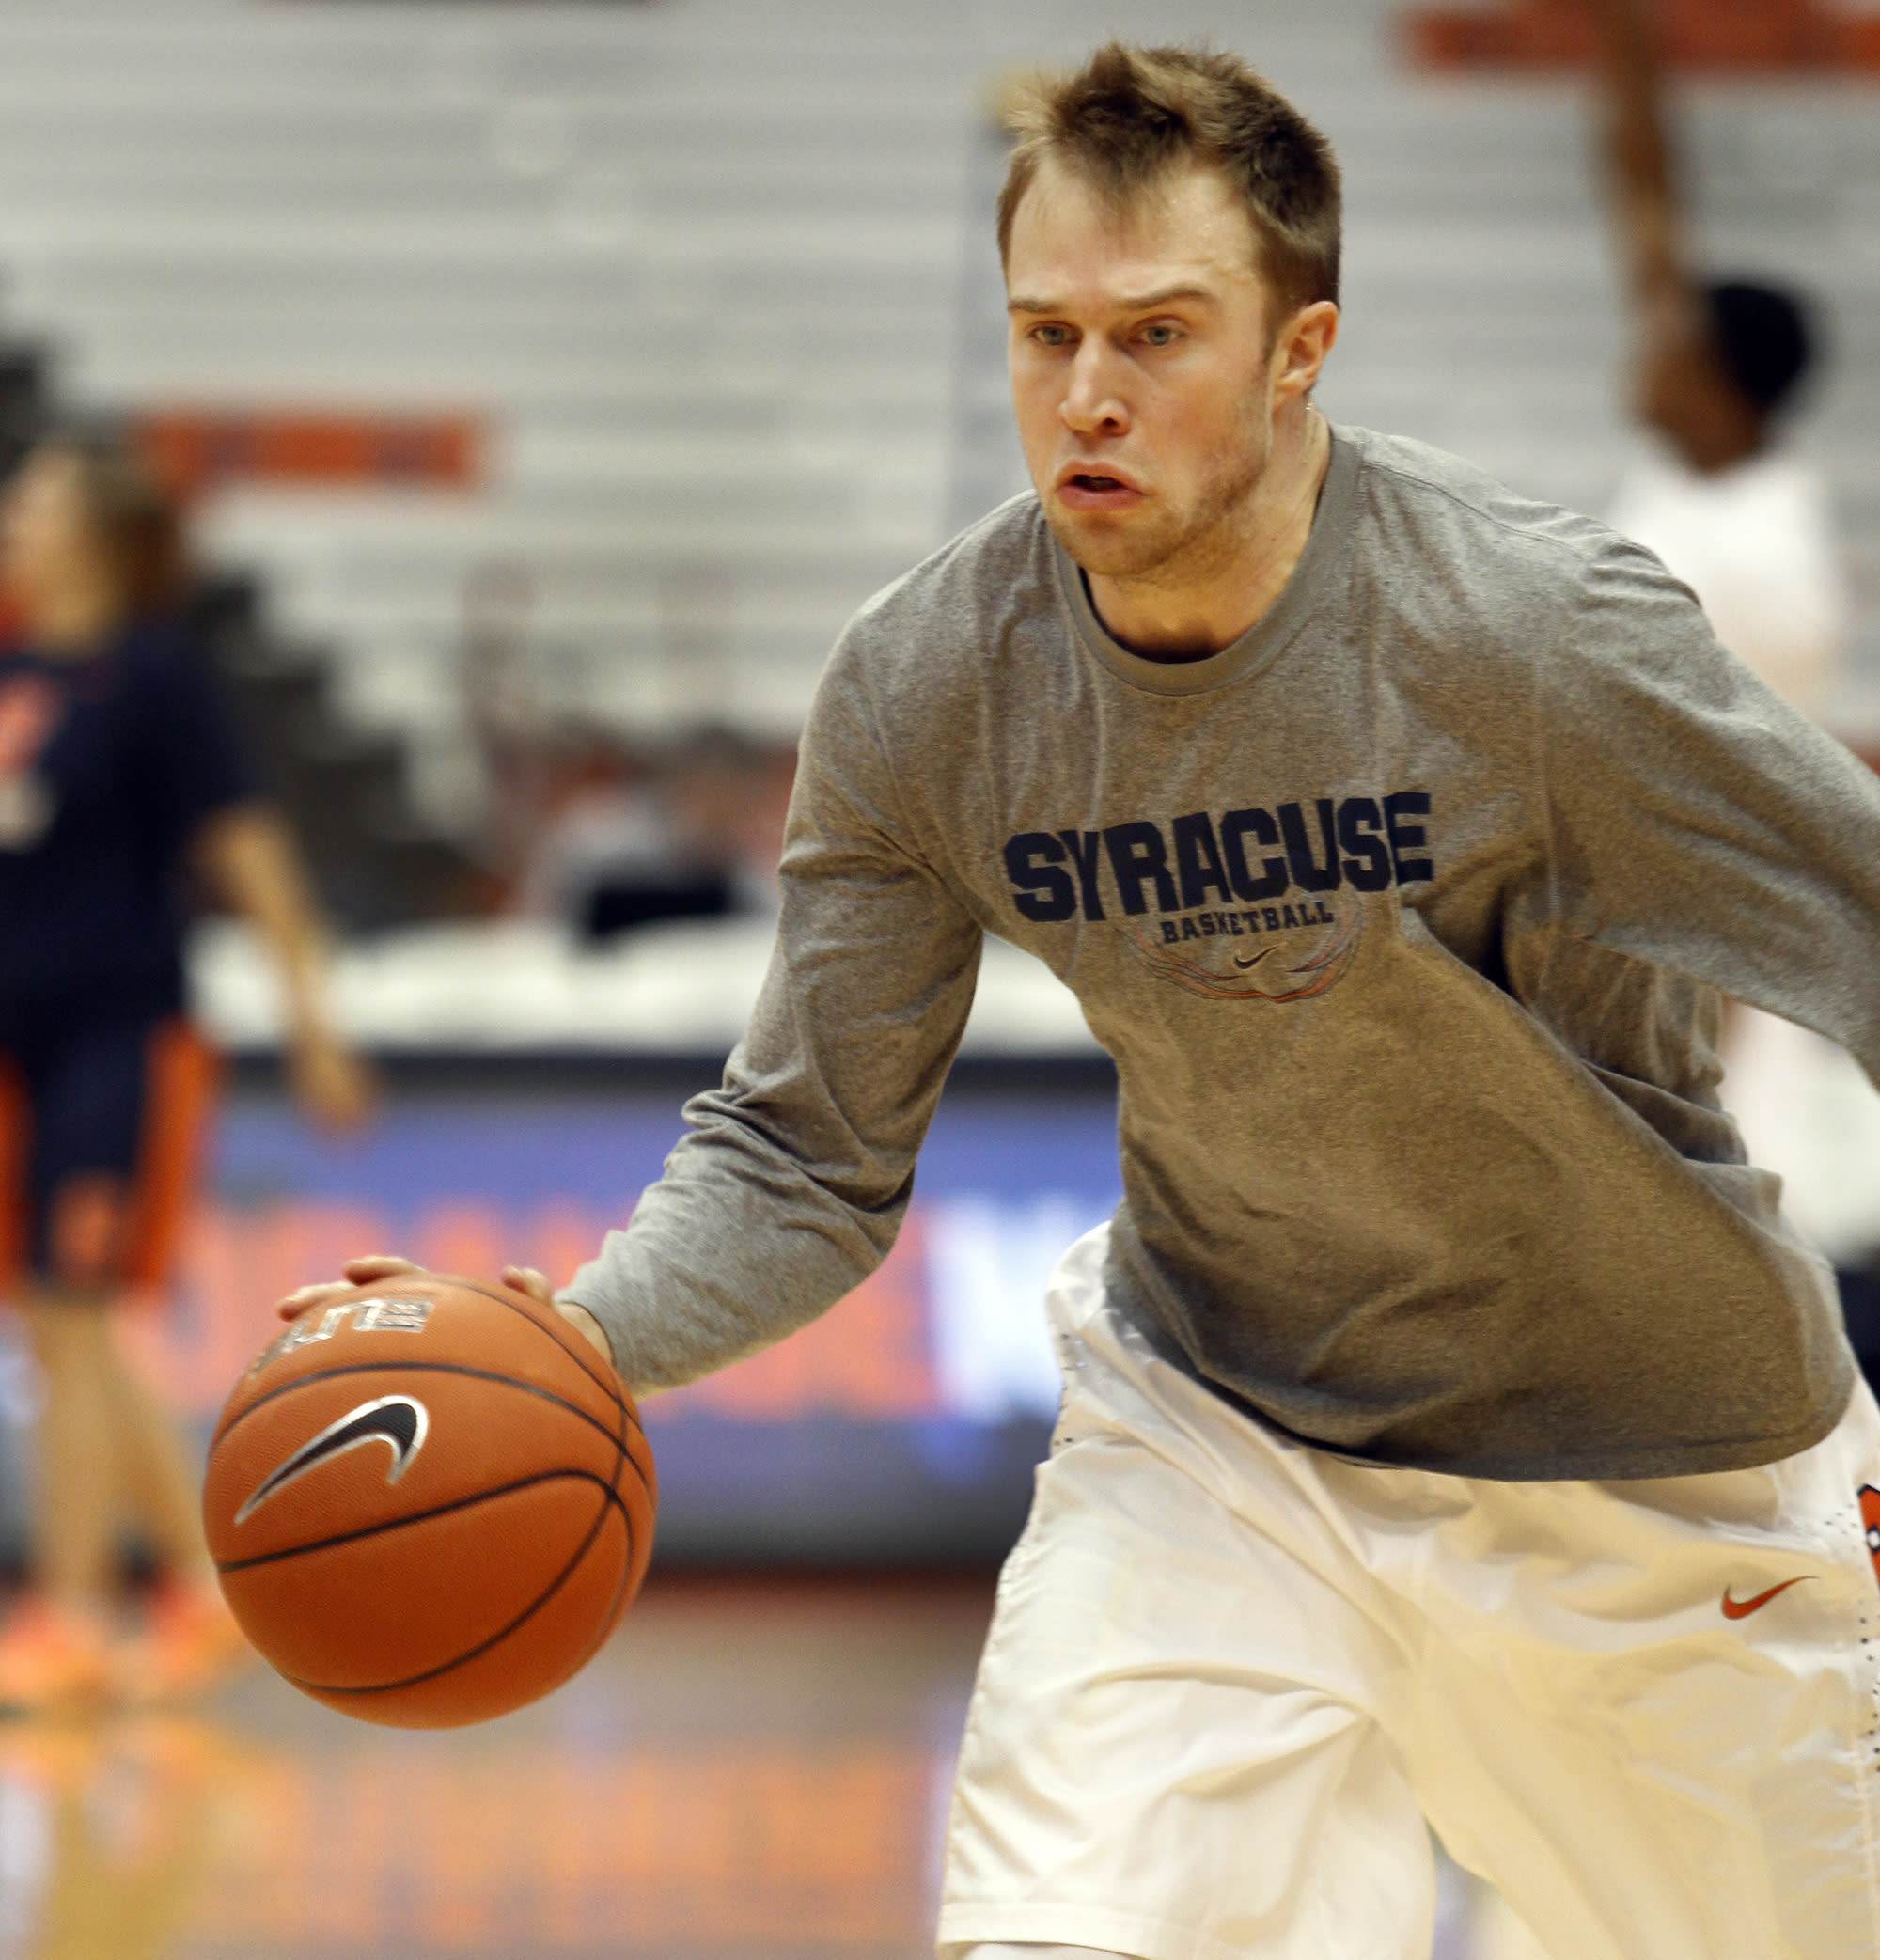 Syracuse regroups behind Cooney and Christmas